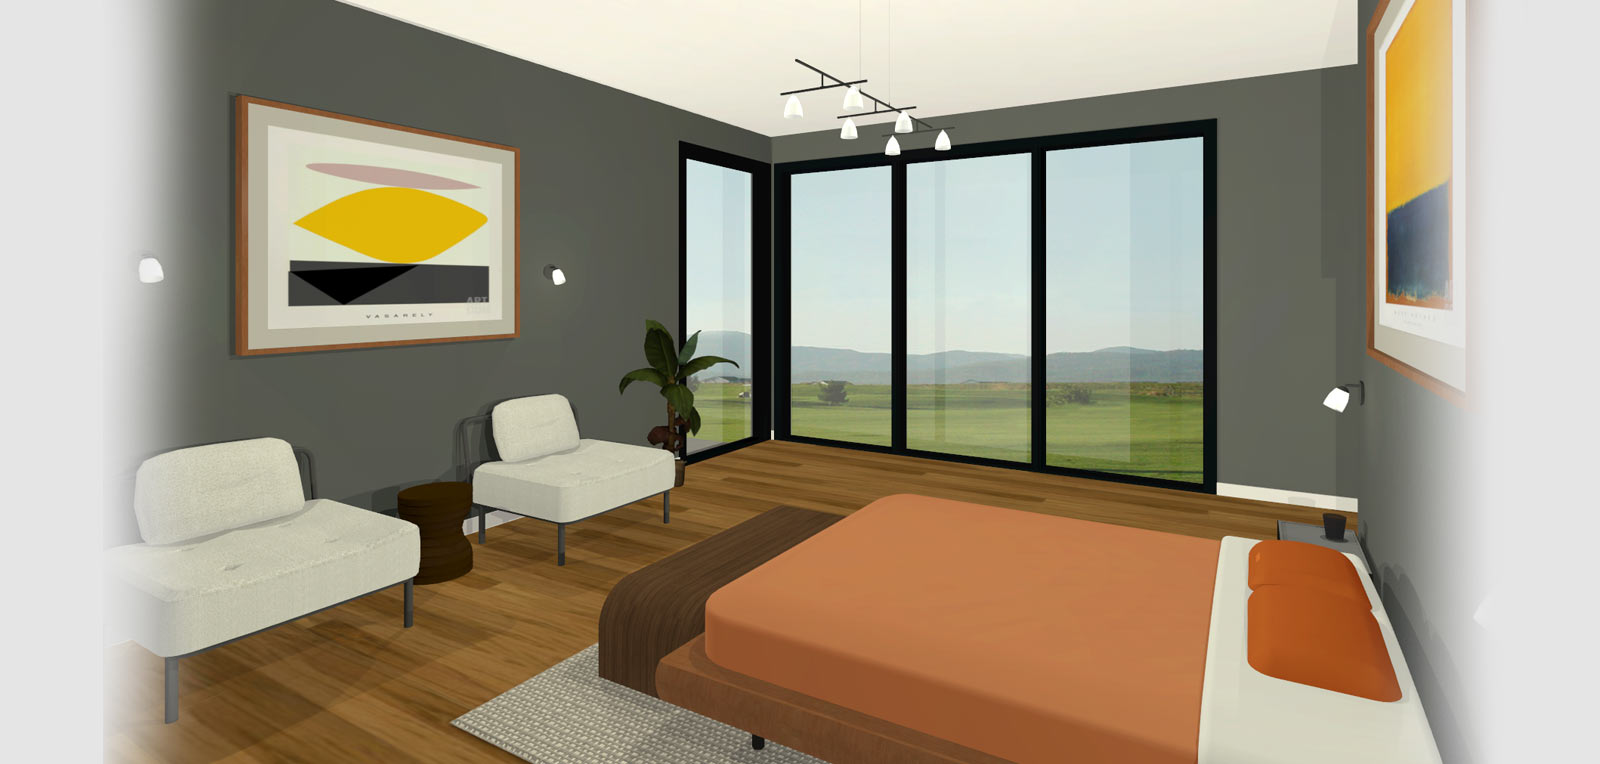 Home designer interior design software for Window design interiors